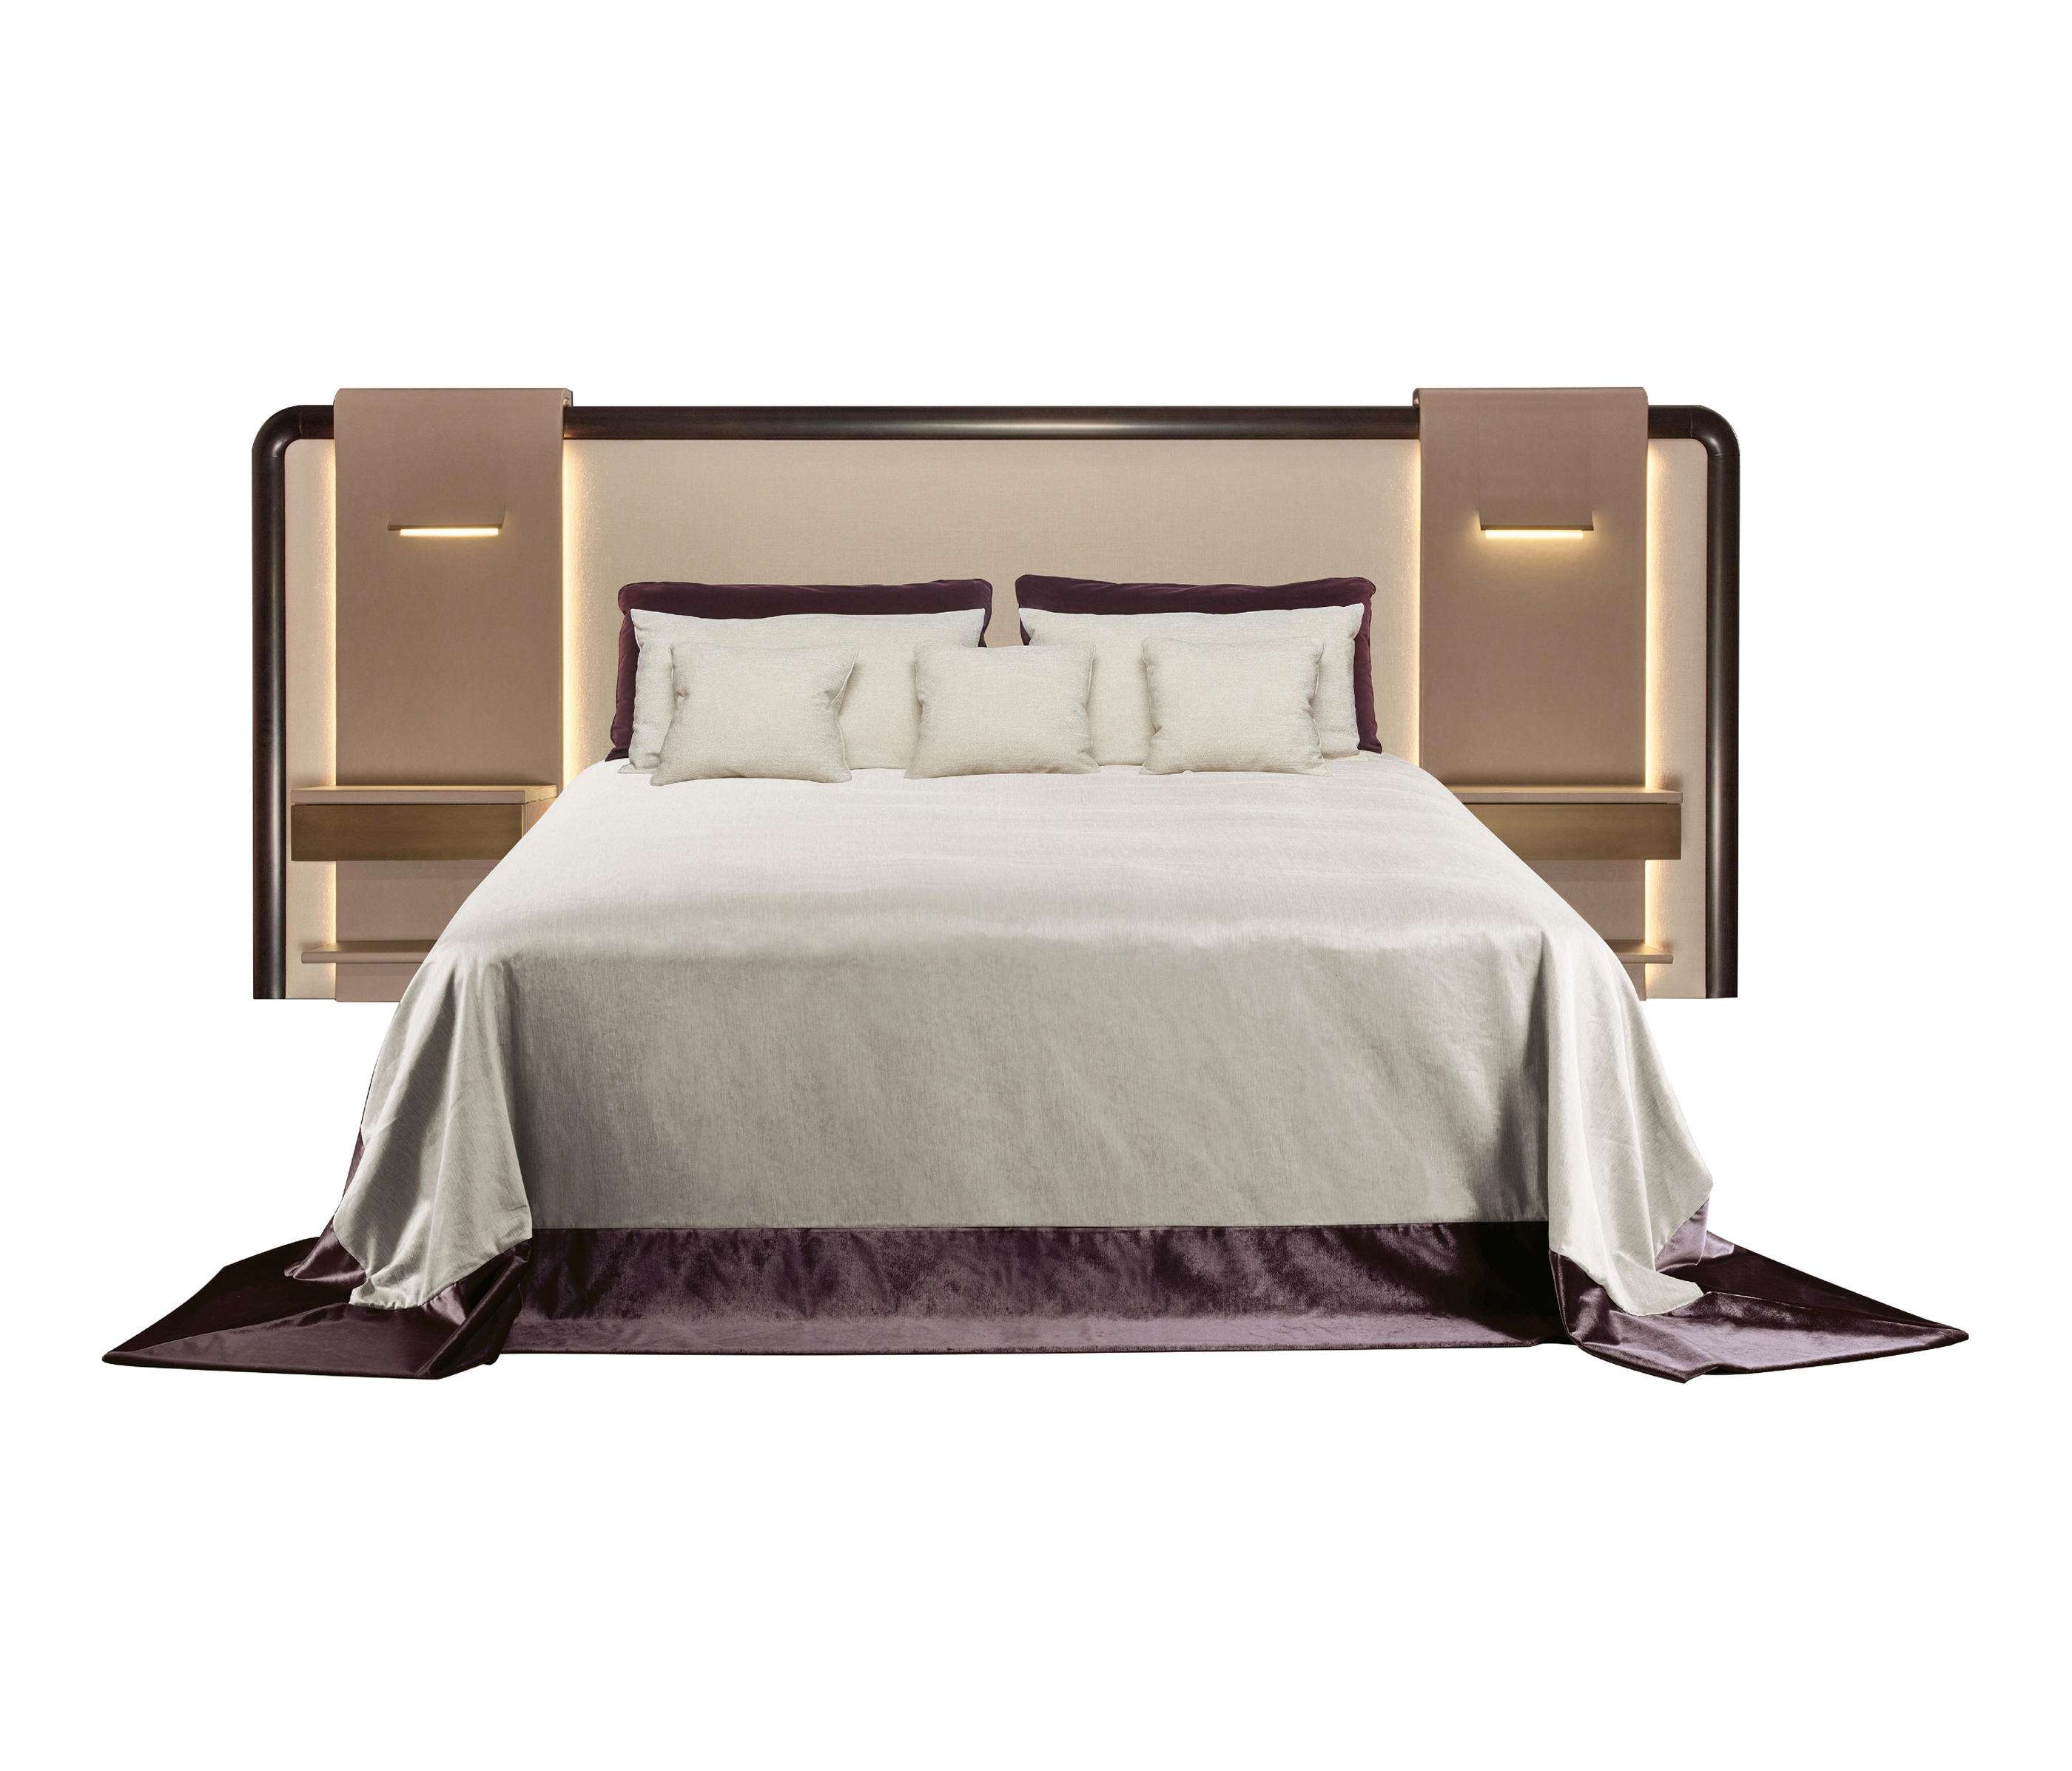 Bed Headboard Kali Nikta Headboard Bed Headboards From Promemoria Architonic